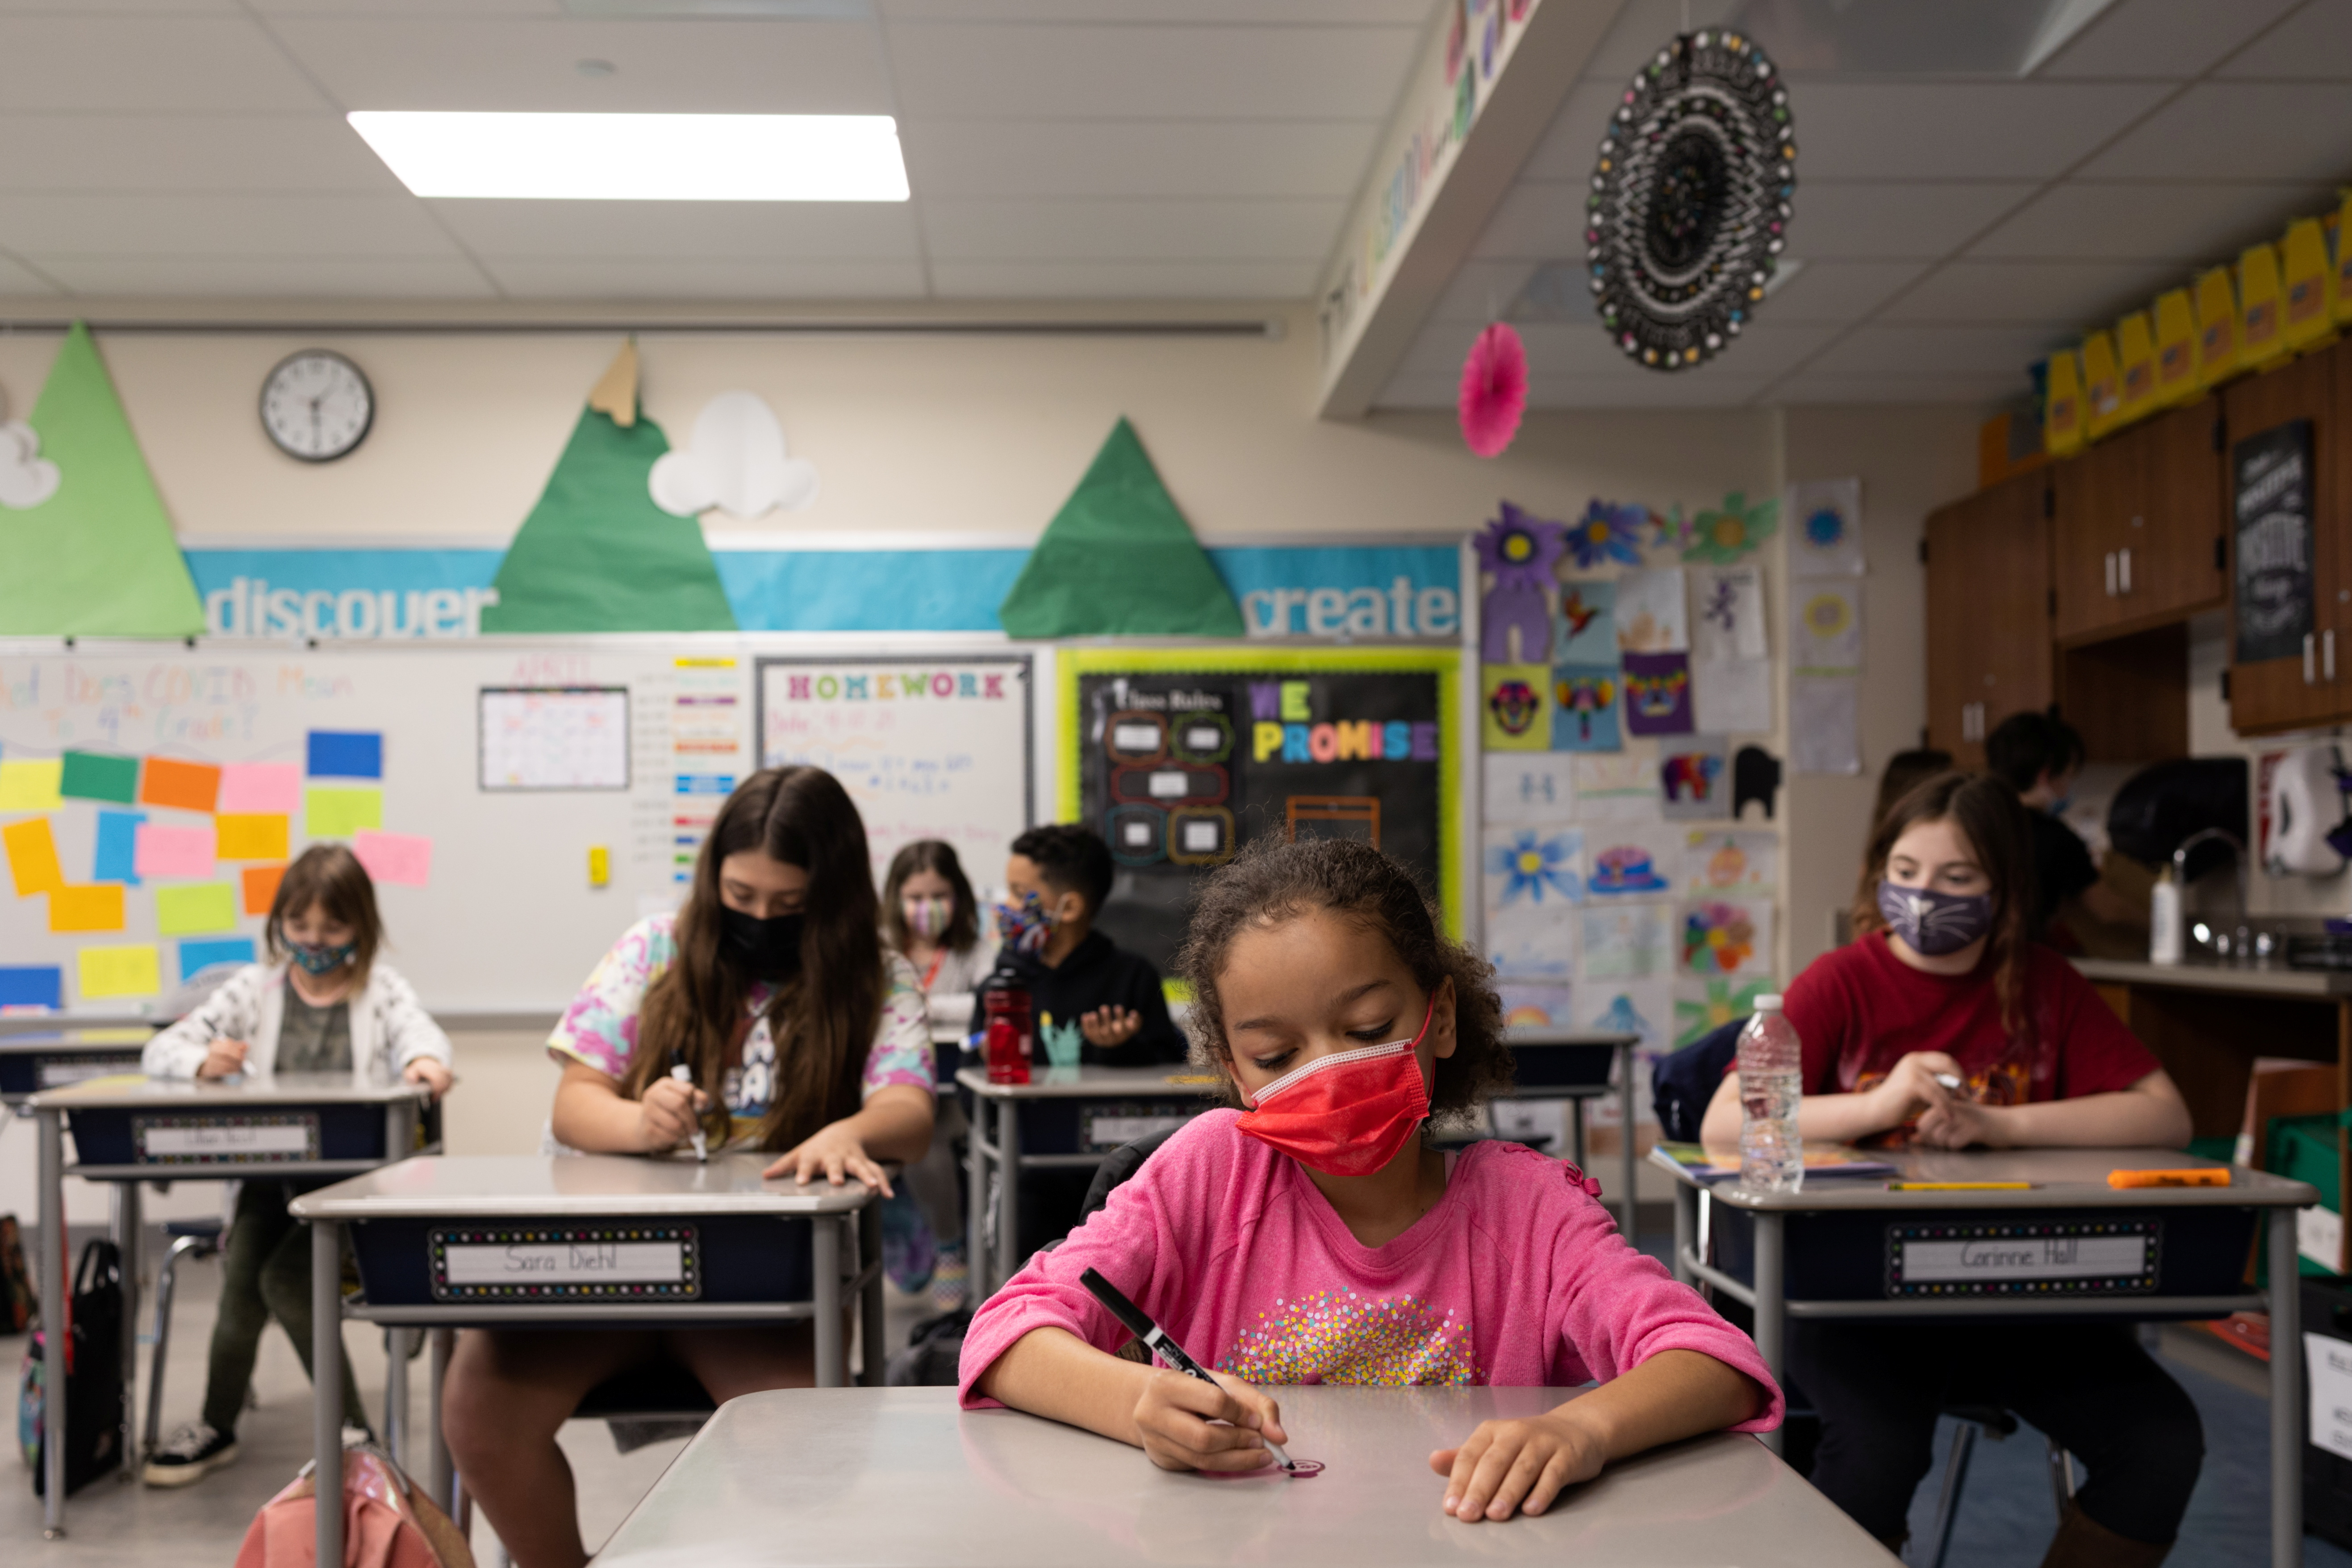 Samantha Wiik's fourth grade class does an activity comparing the positive outcomes of the coronavirus disease (COVID-19) to their word of the week,